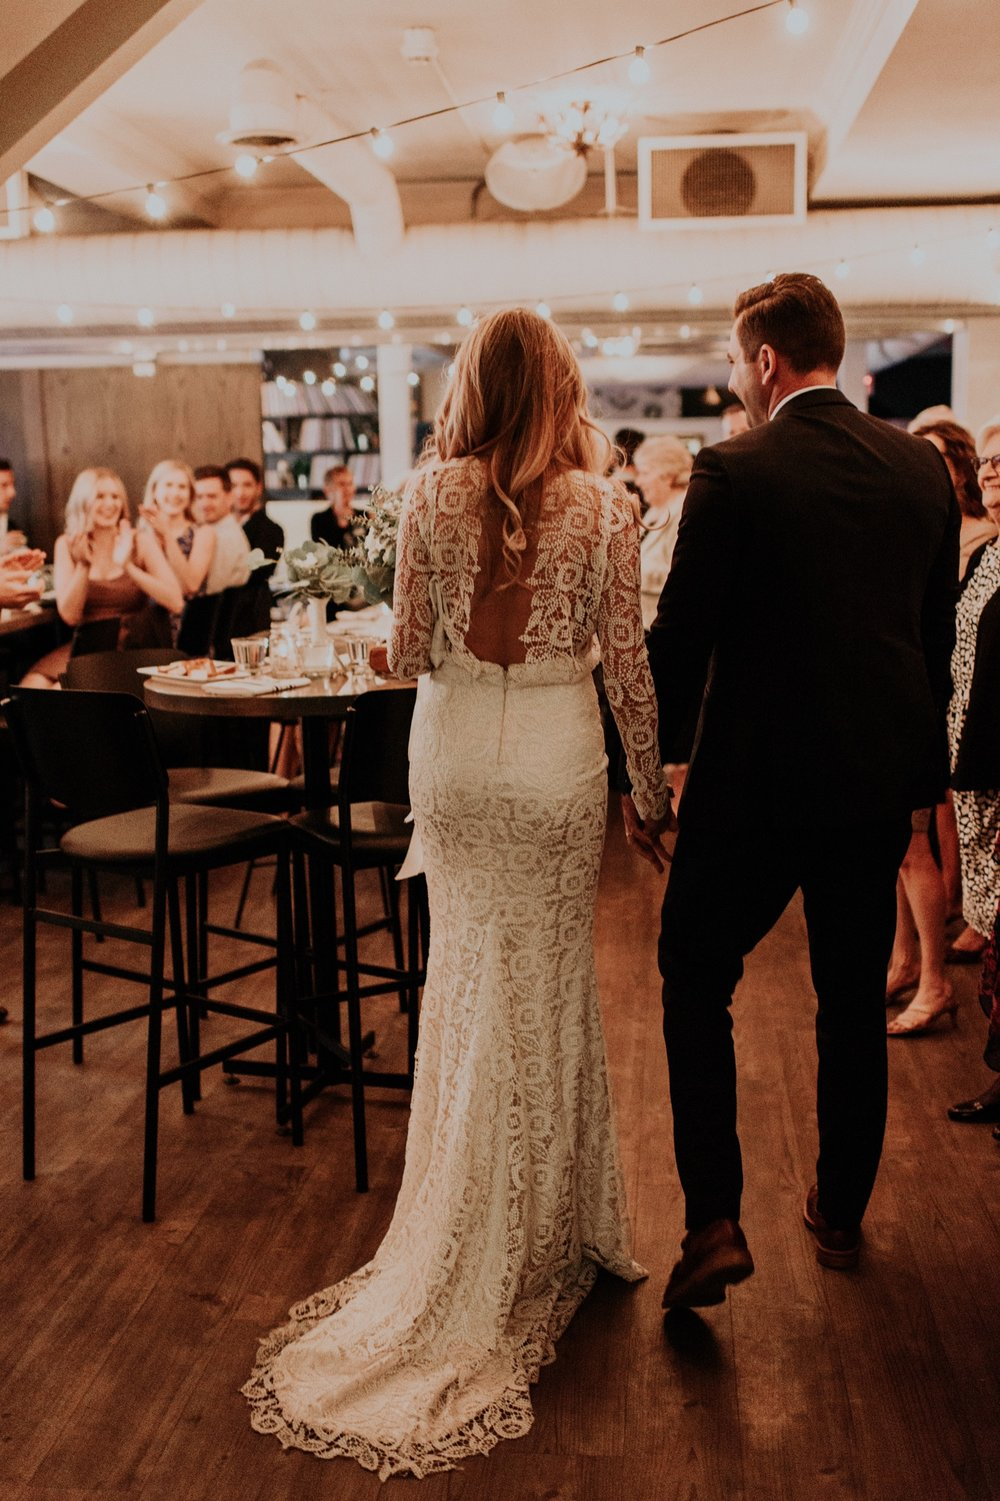 Wedding and Elopement Photography_Karly Ford Photo 67.jpg